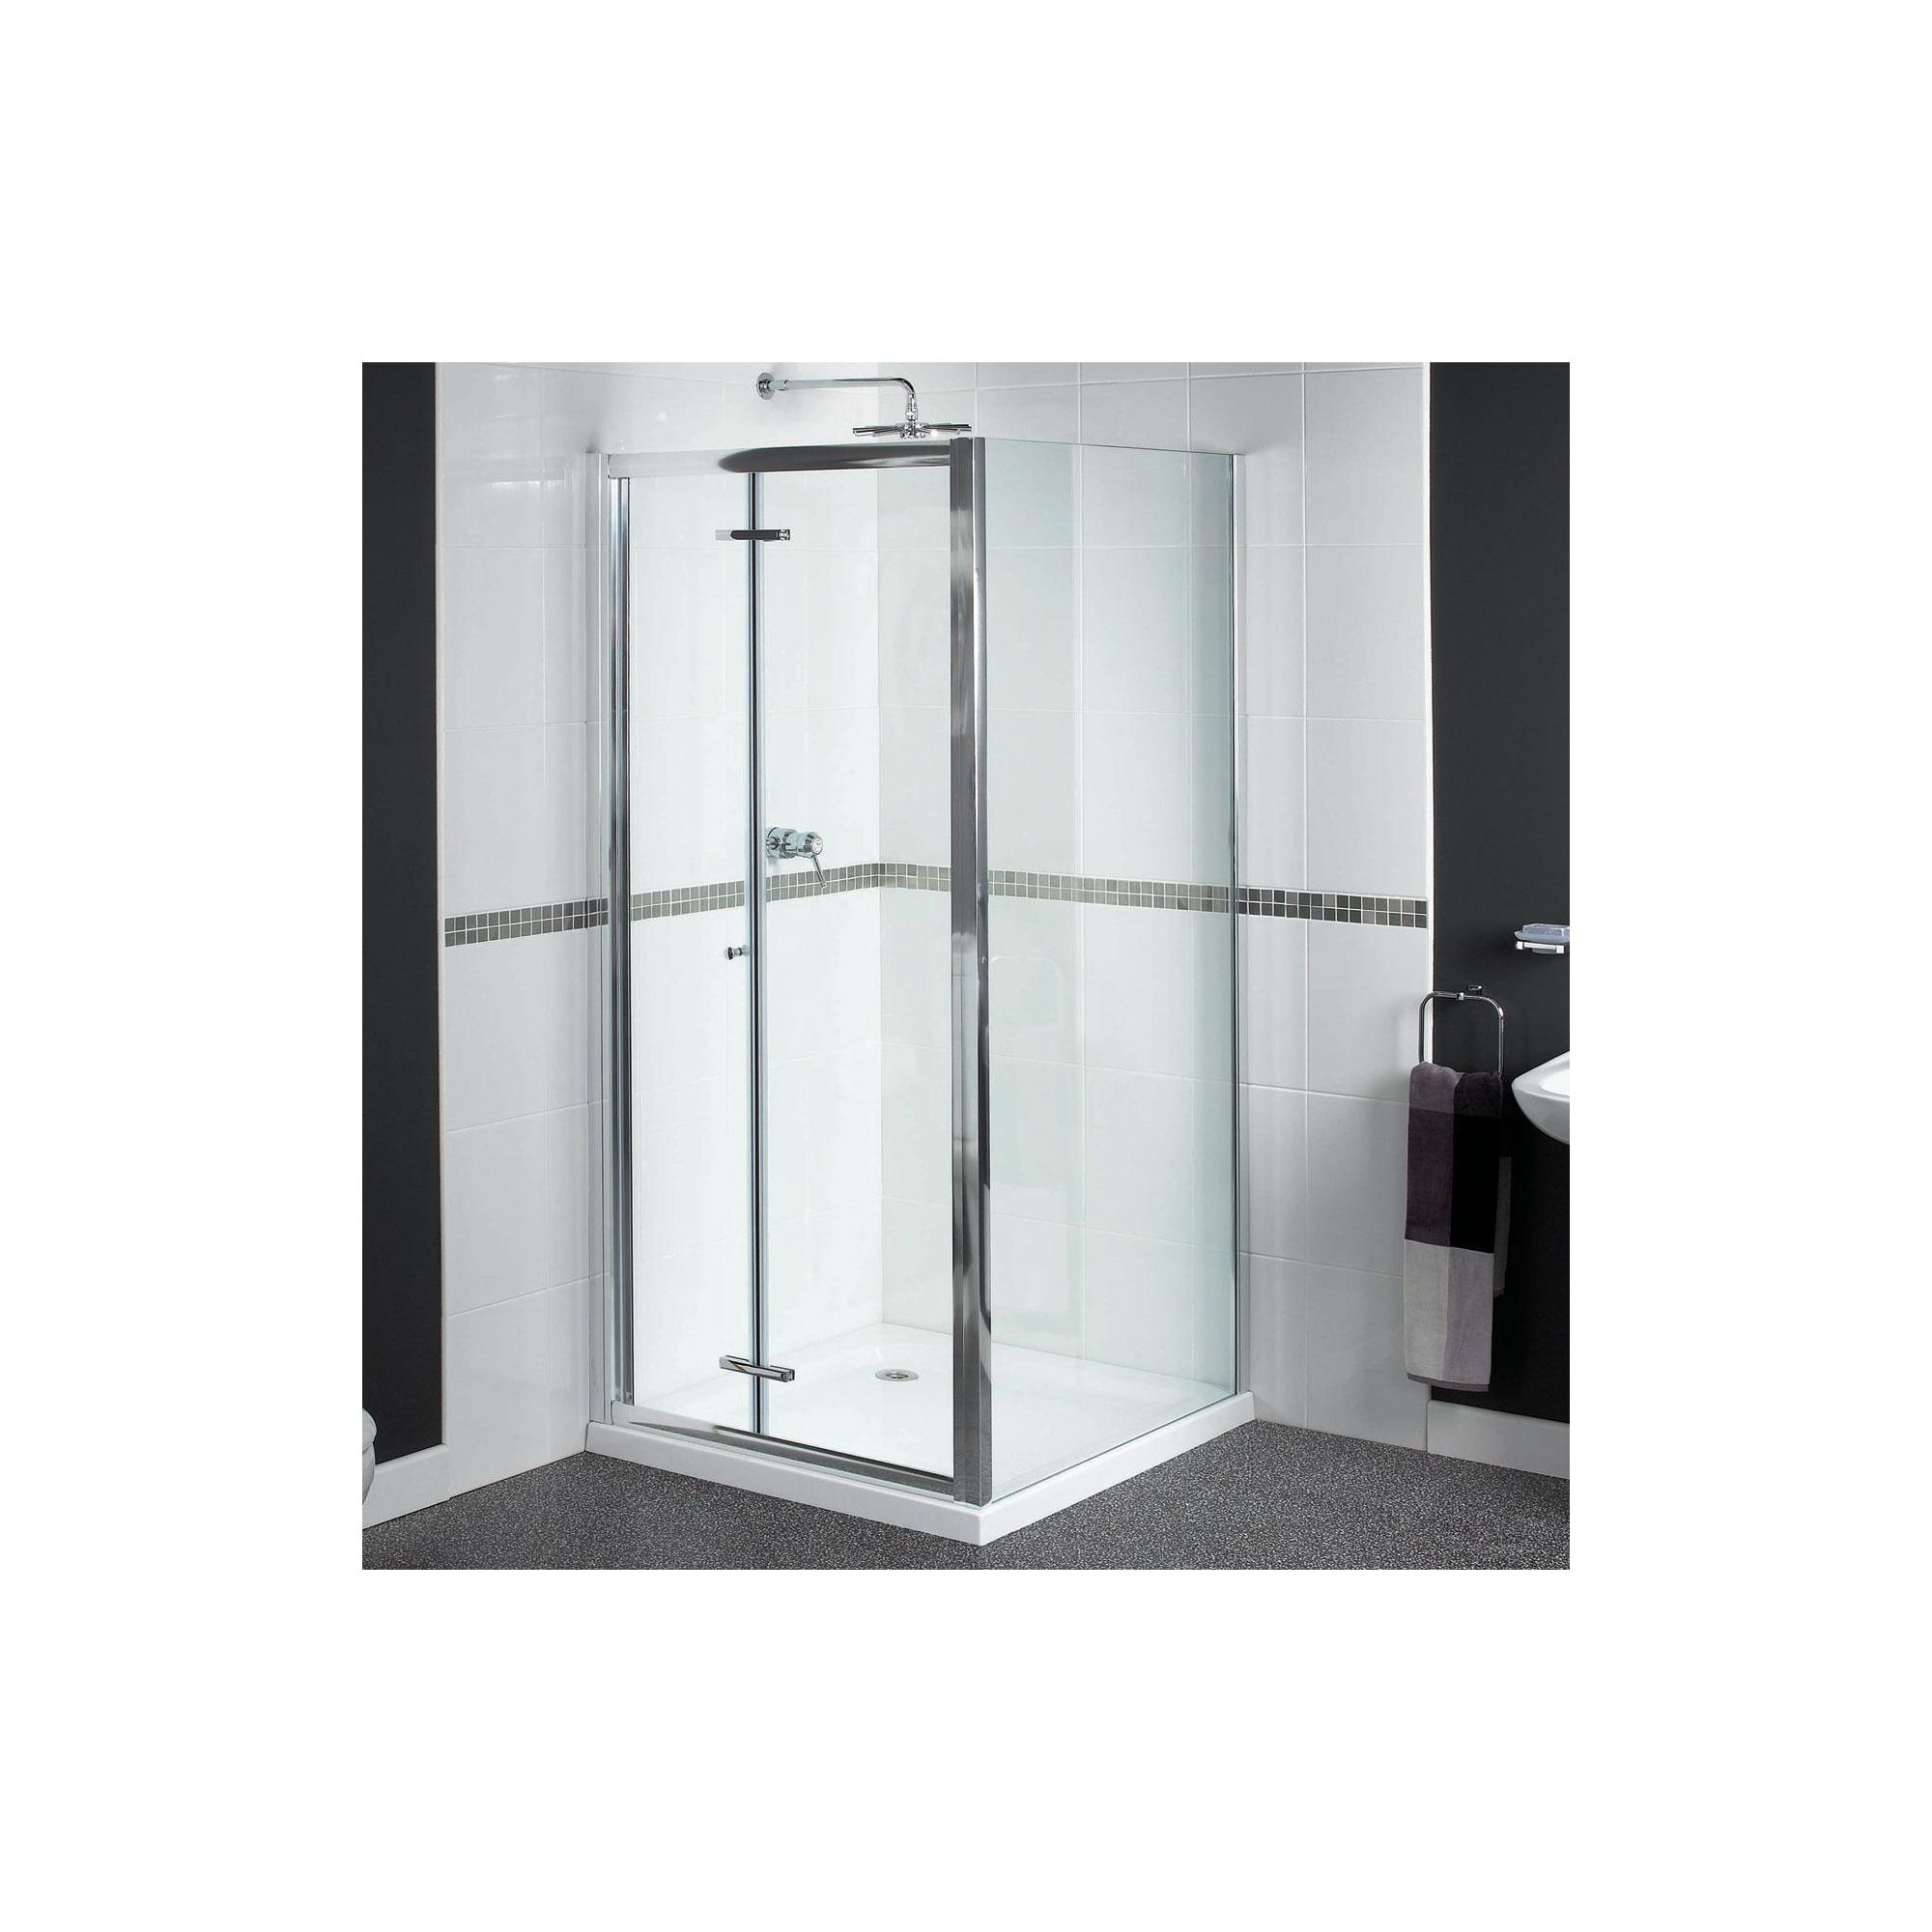 Aqualux Shine Bi-Fold Shower Door, 800mm Wide, Polished Silver Frame, 6mm Glass at Tesco Direct